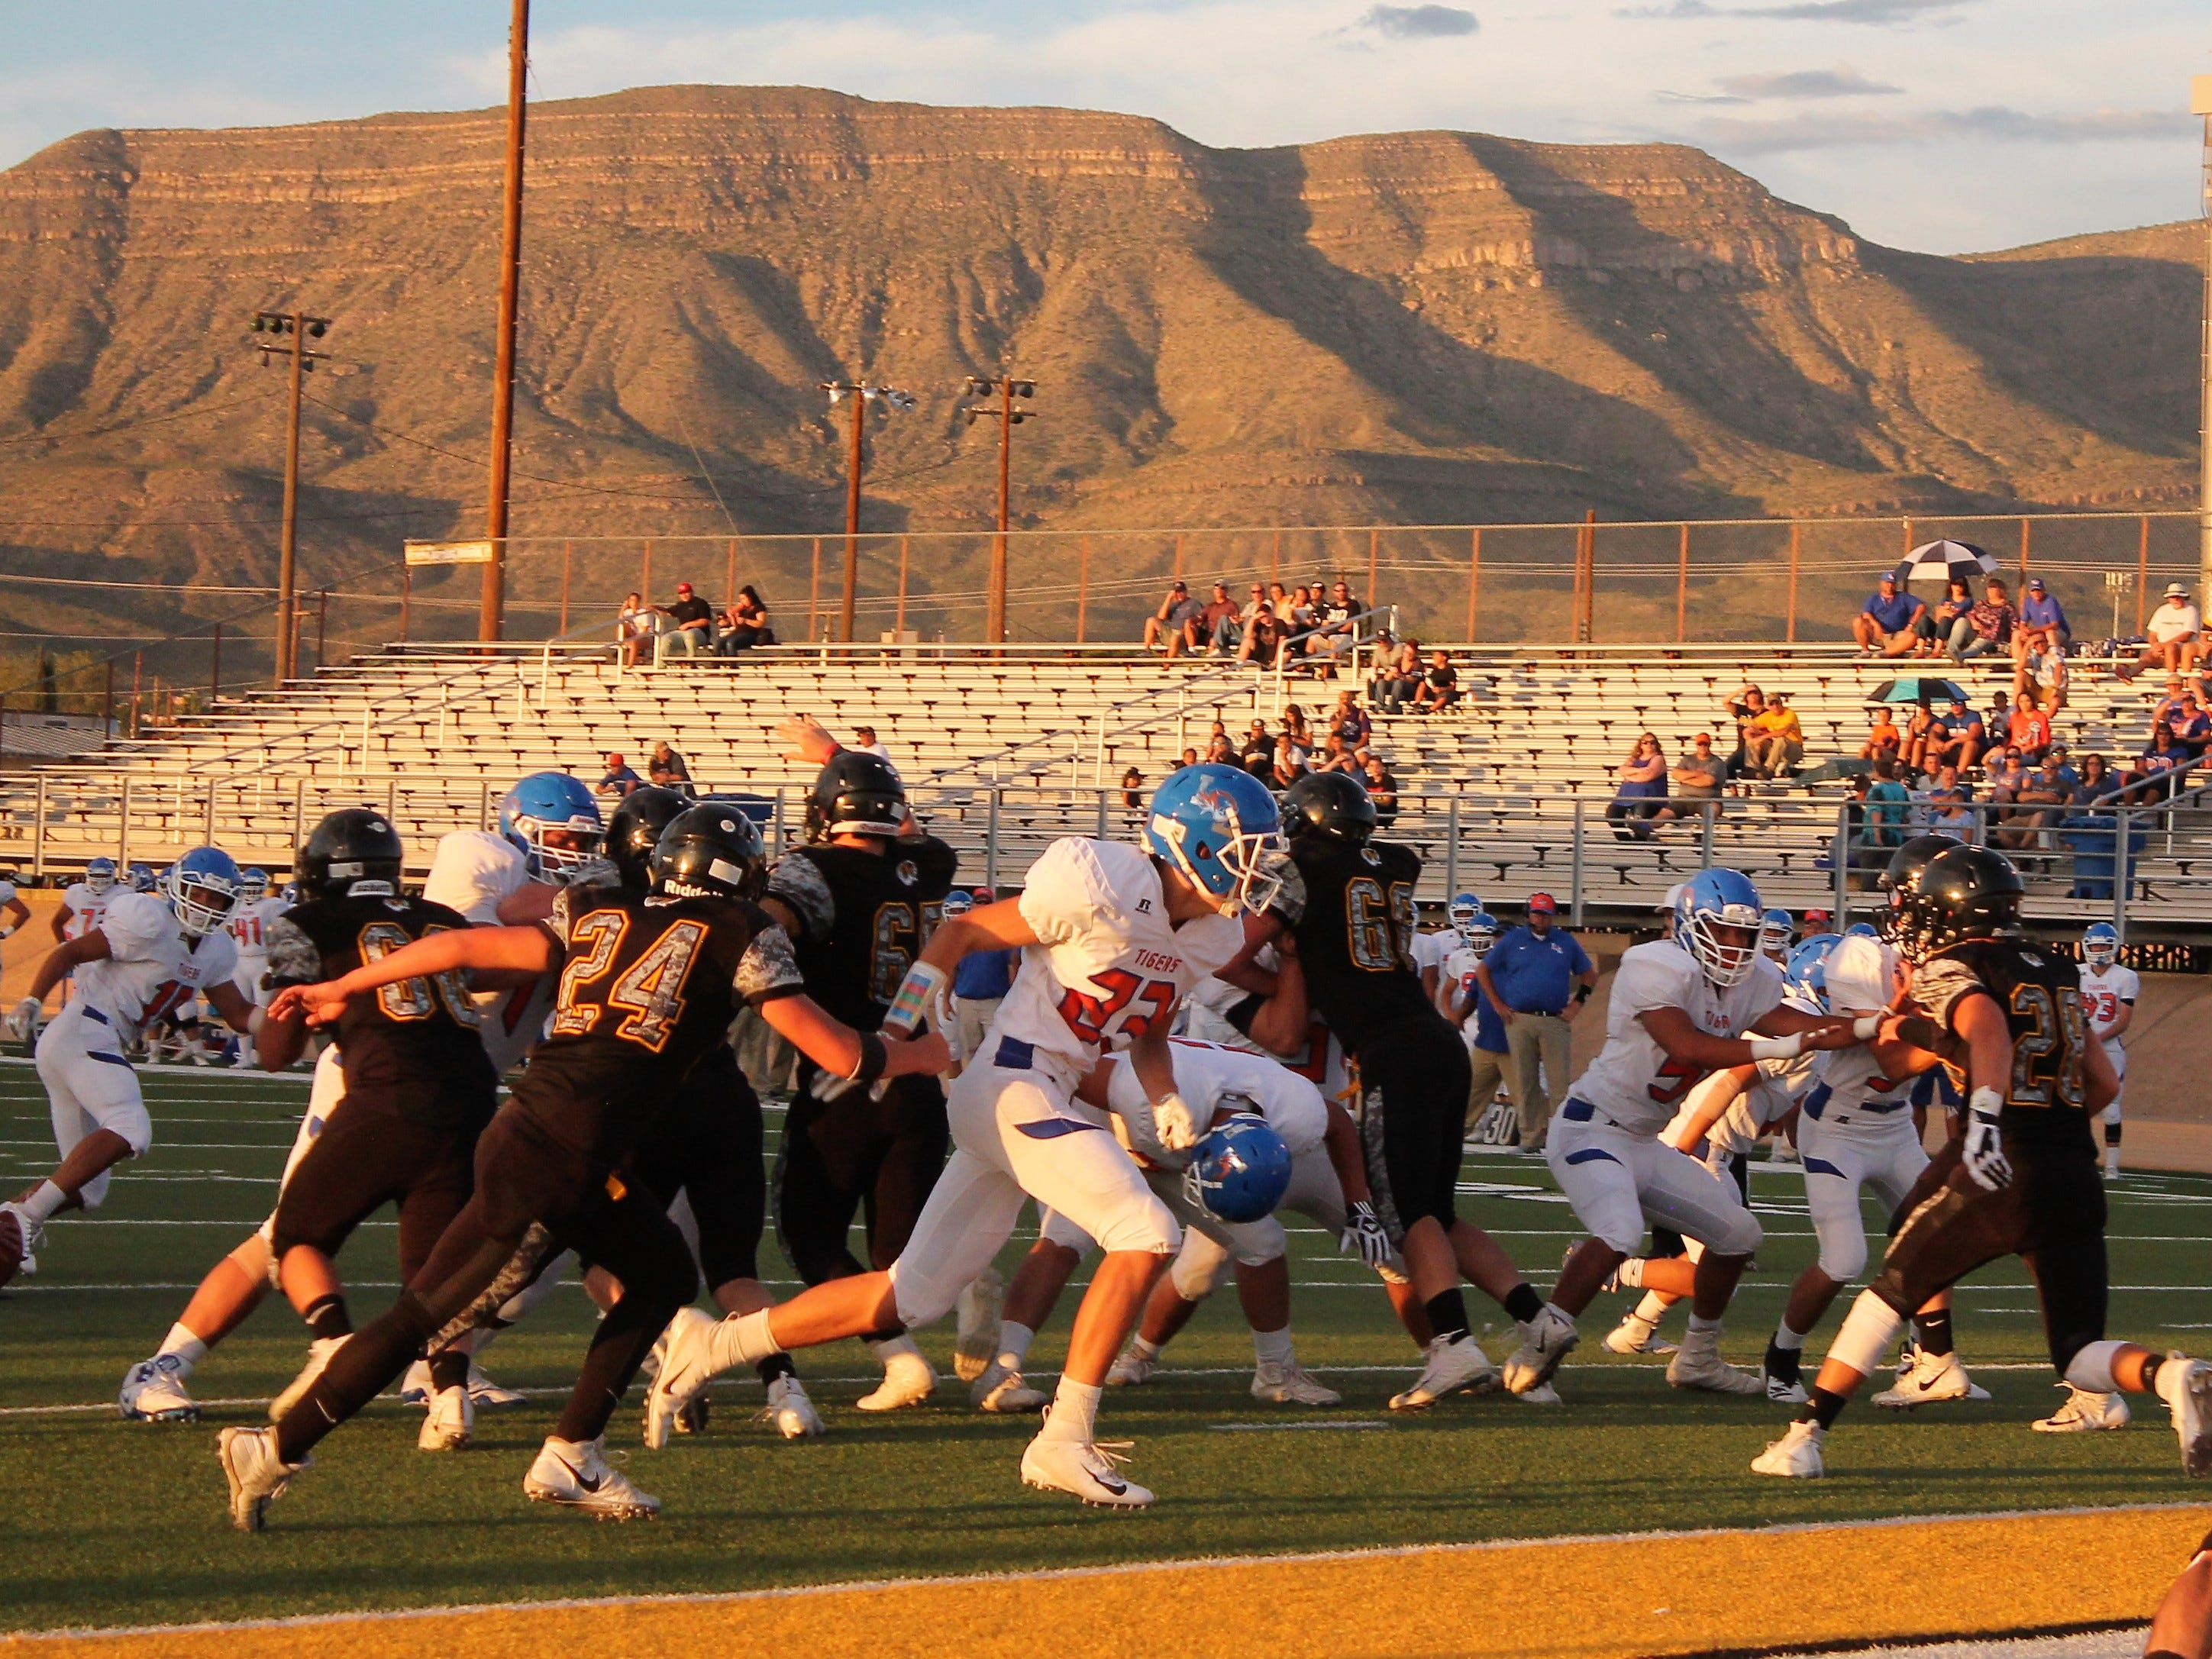 The Alamogordo Tigers took on the Los Lunas Tigers Friday night.